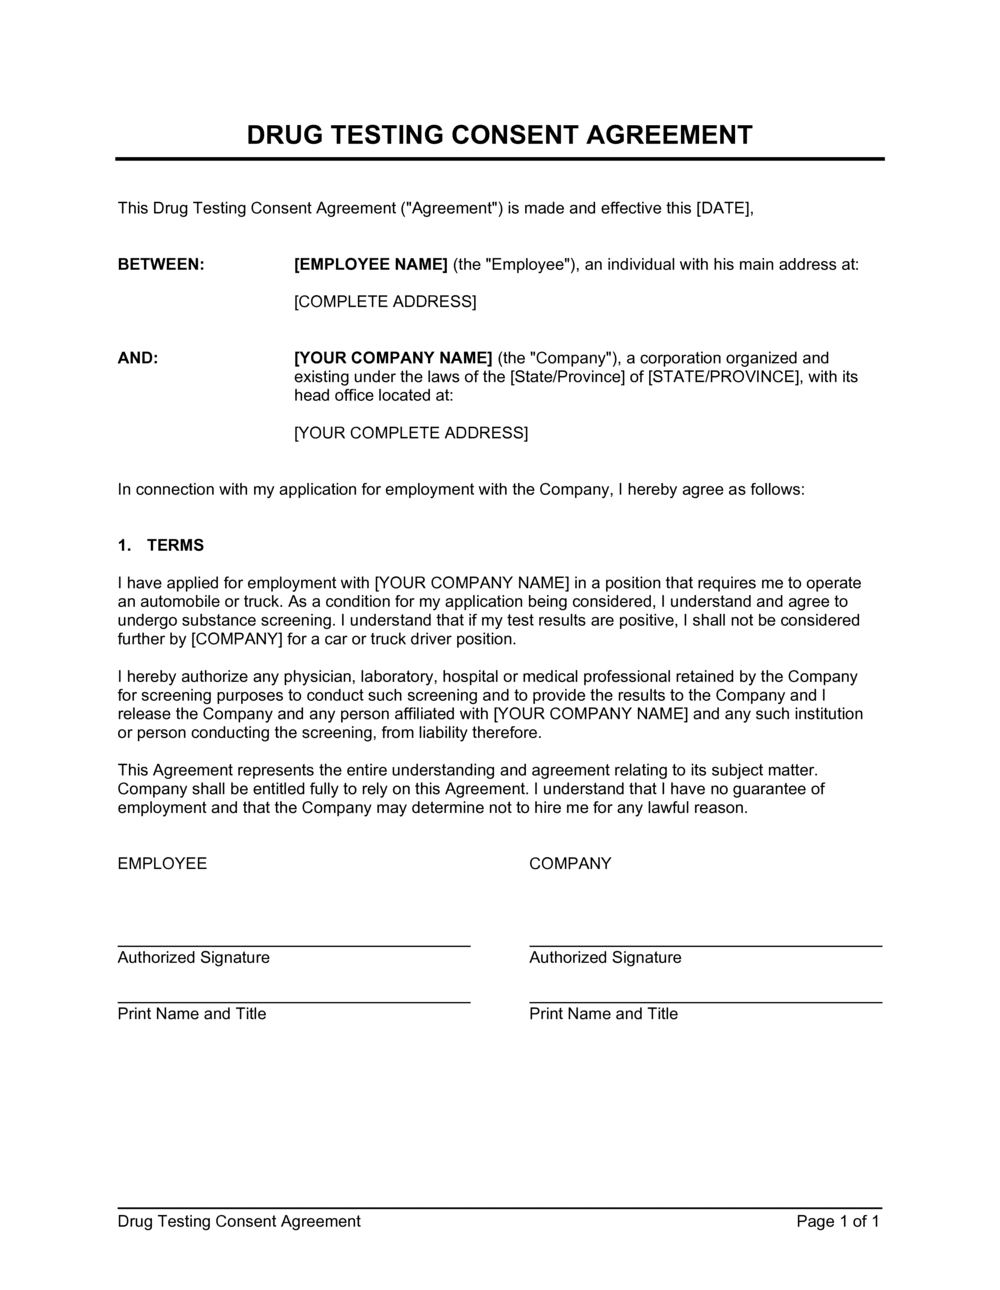 Business-in-a-Box's Drug Testing Consent Agreement Template